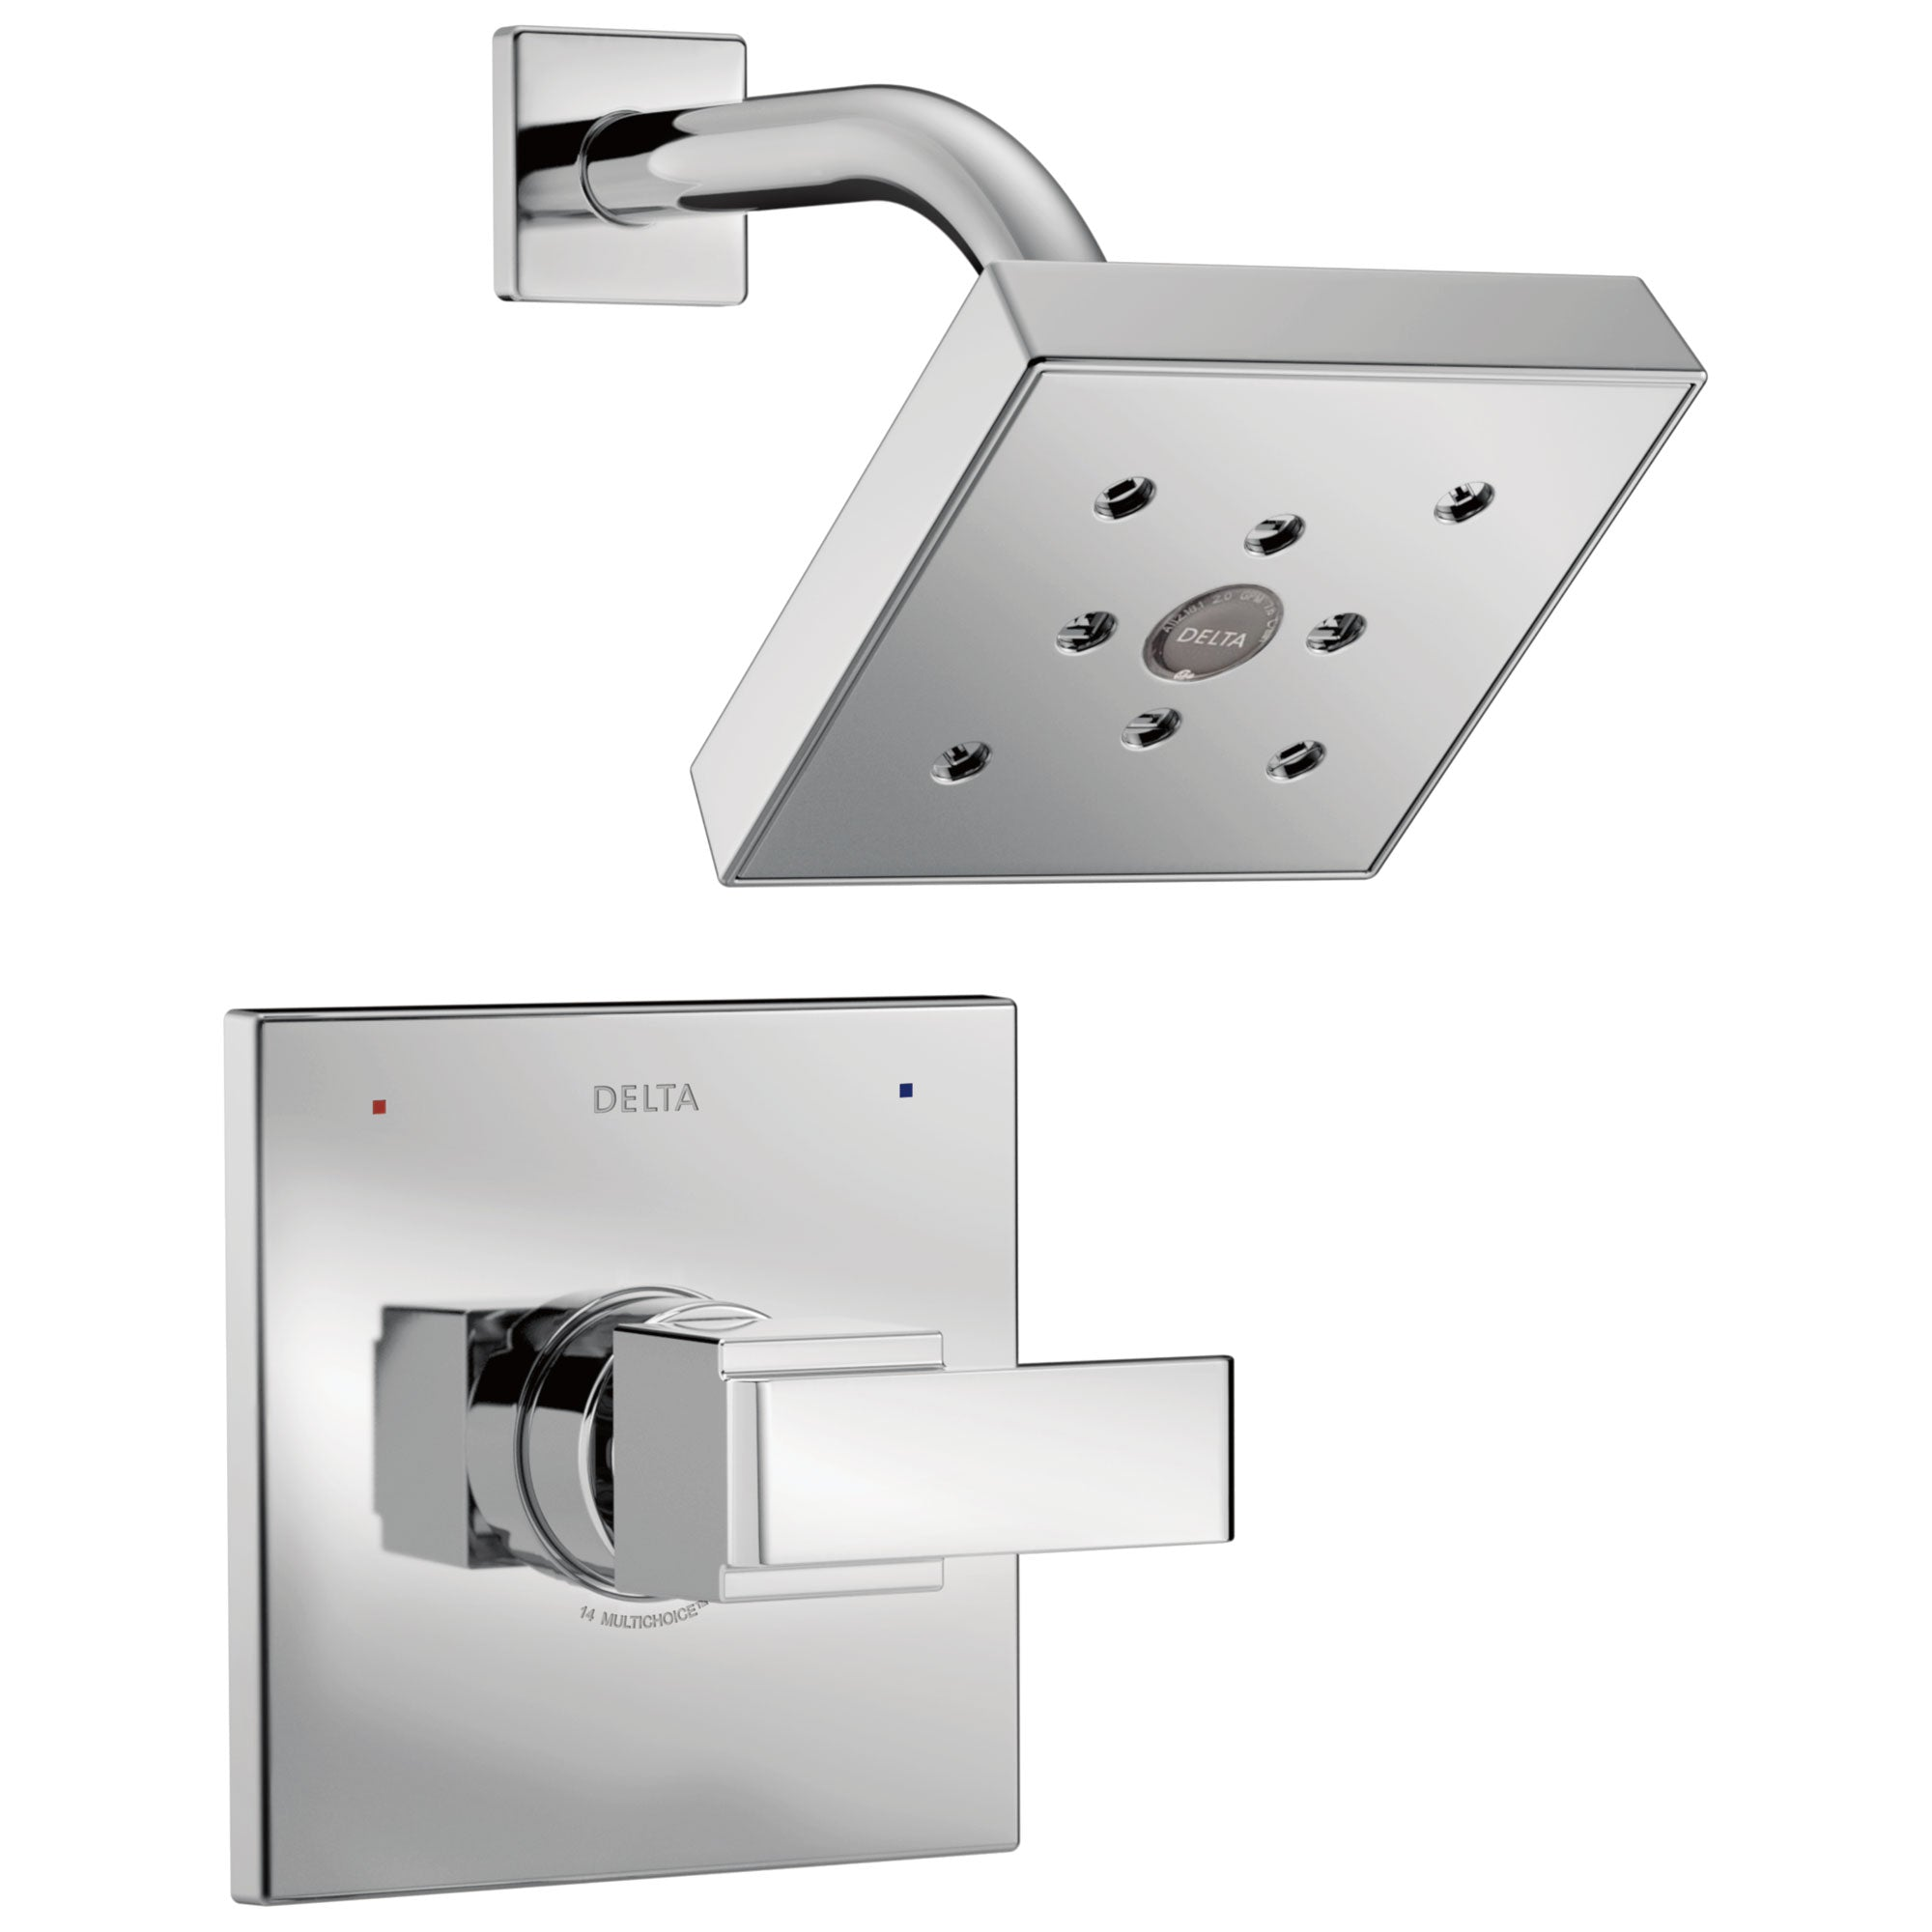 Delta Ara Collection Chrome Monitor 14 Series H2Okinetic Square Showerhead and Modern Single Handle Control Includes Rough-in Valve without Stops D2441V